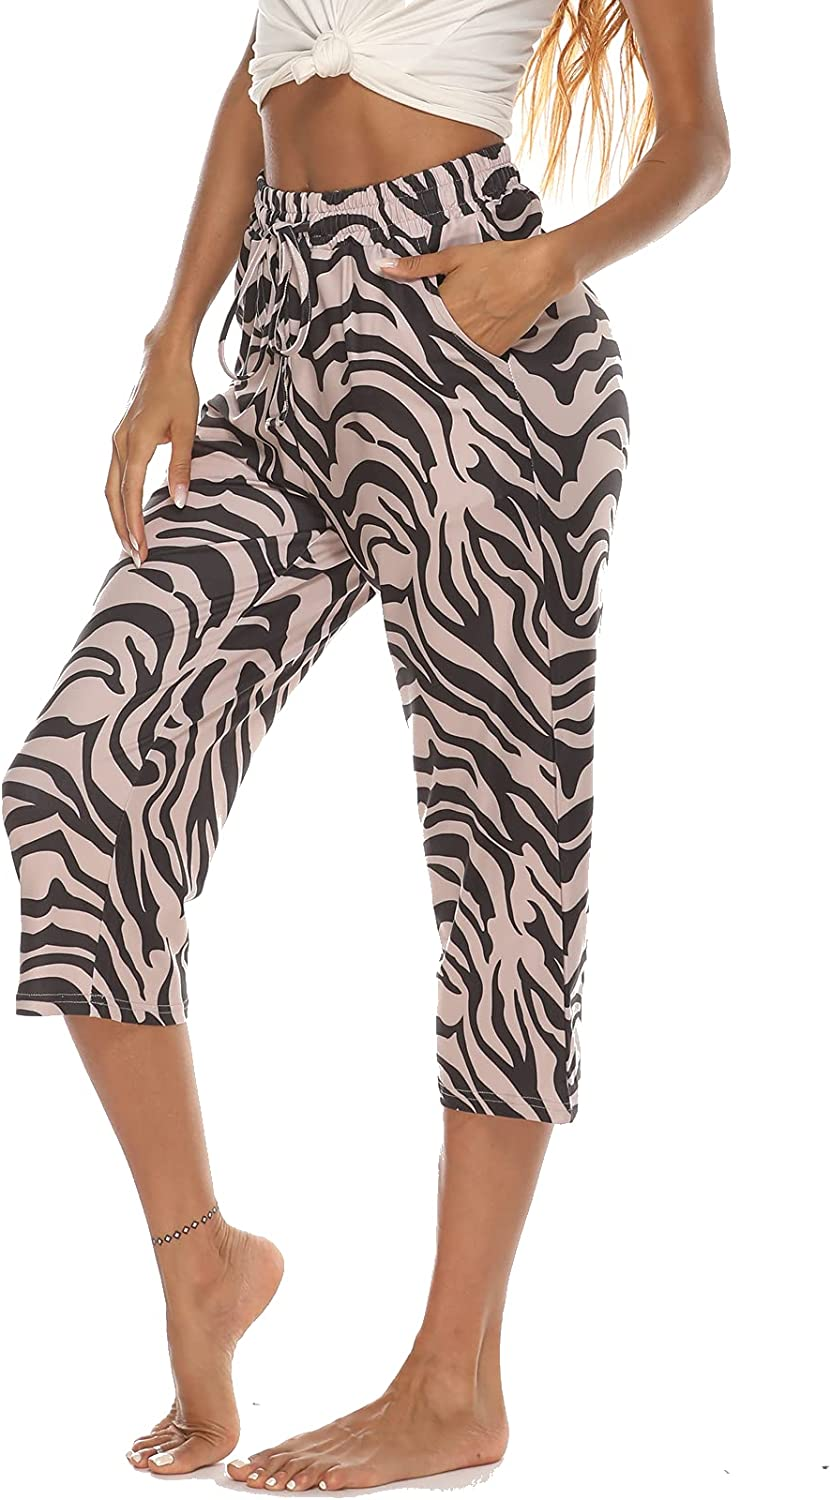 quality assurance ARRIVE GUIDE Womens Yoga Capri Pants Summer Raleigh Mall Comfy C Casual Loose